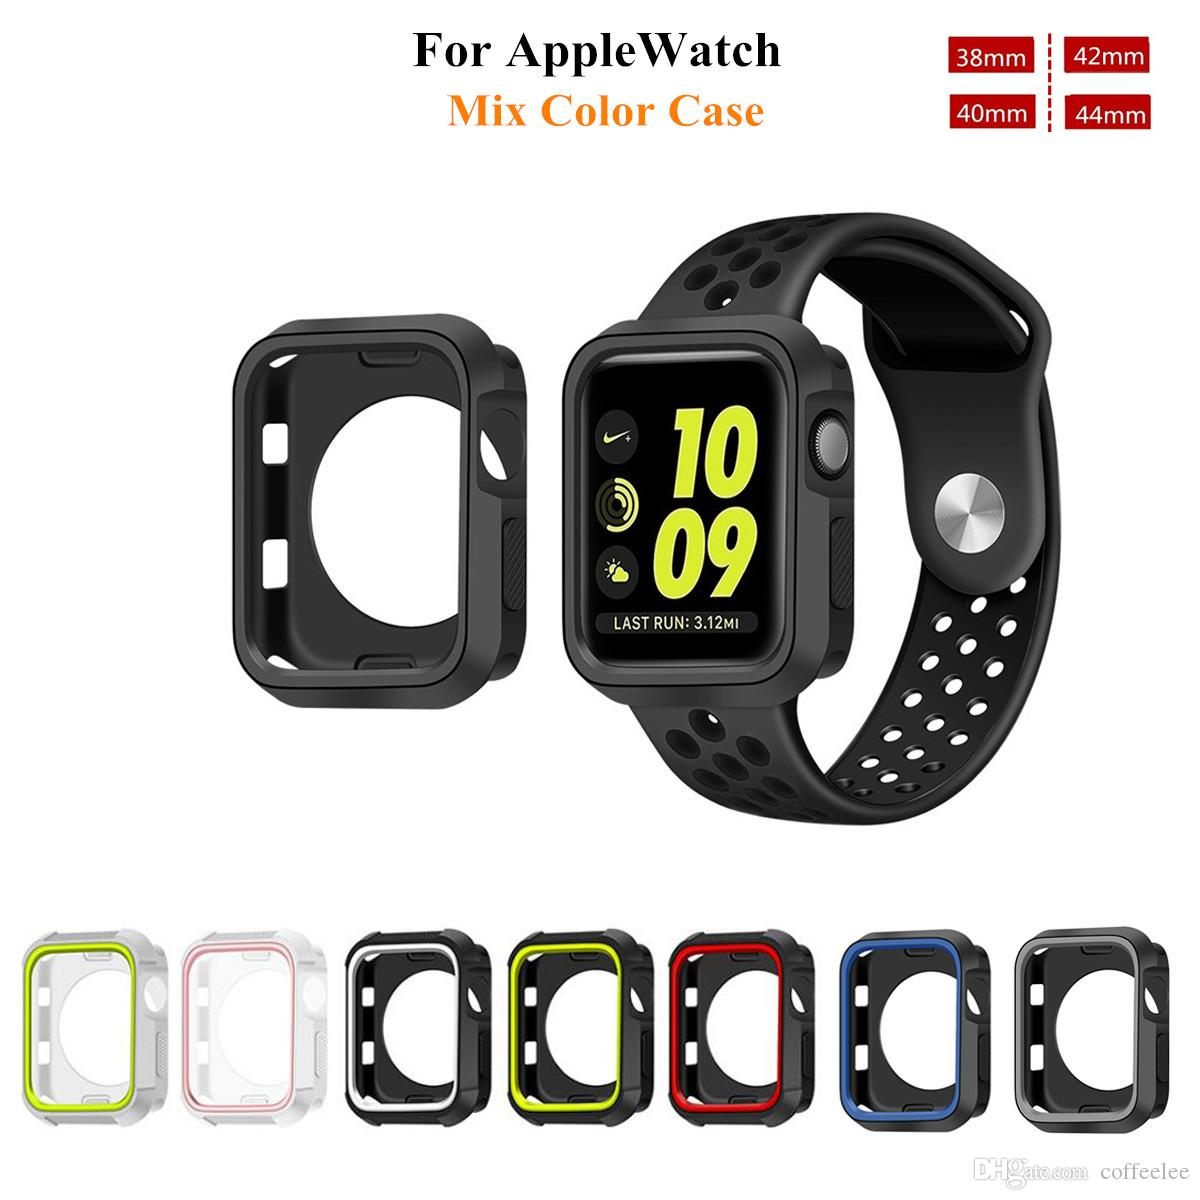 best loved 61af9 f8d6c For Apple Watch 4 Two Color Protective Case Shockproof Heave Duty TPU Cover  Case For Iwatch 38MM 42 MM 40MM 44MM Iwatch Cases Stainless Steel Watch ...